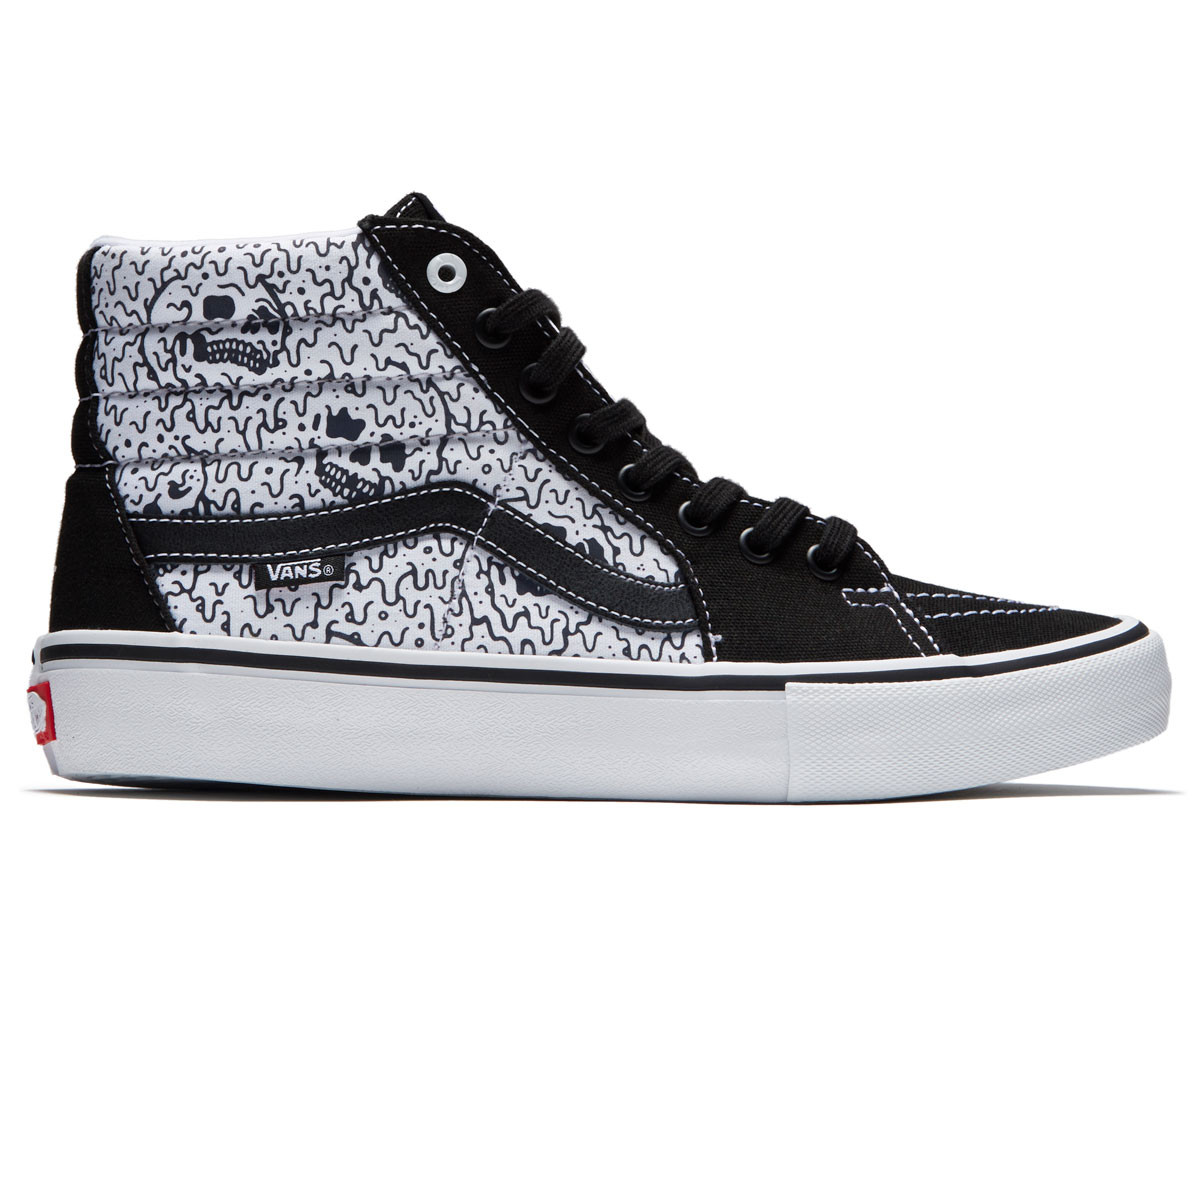 5db6526520 Vans X Sketchy Tank SK8-Hi Pro Shoes - Black White Reflective -